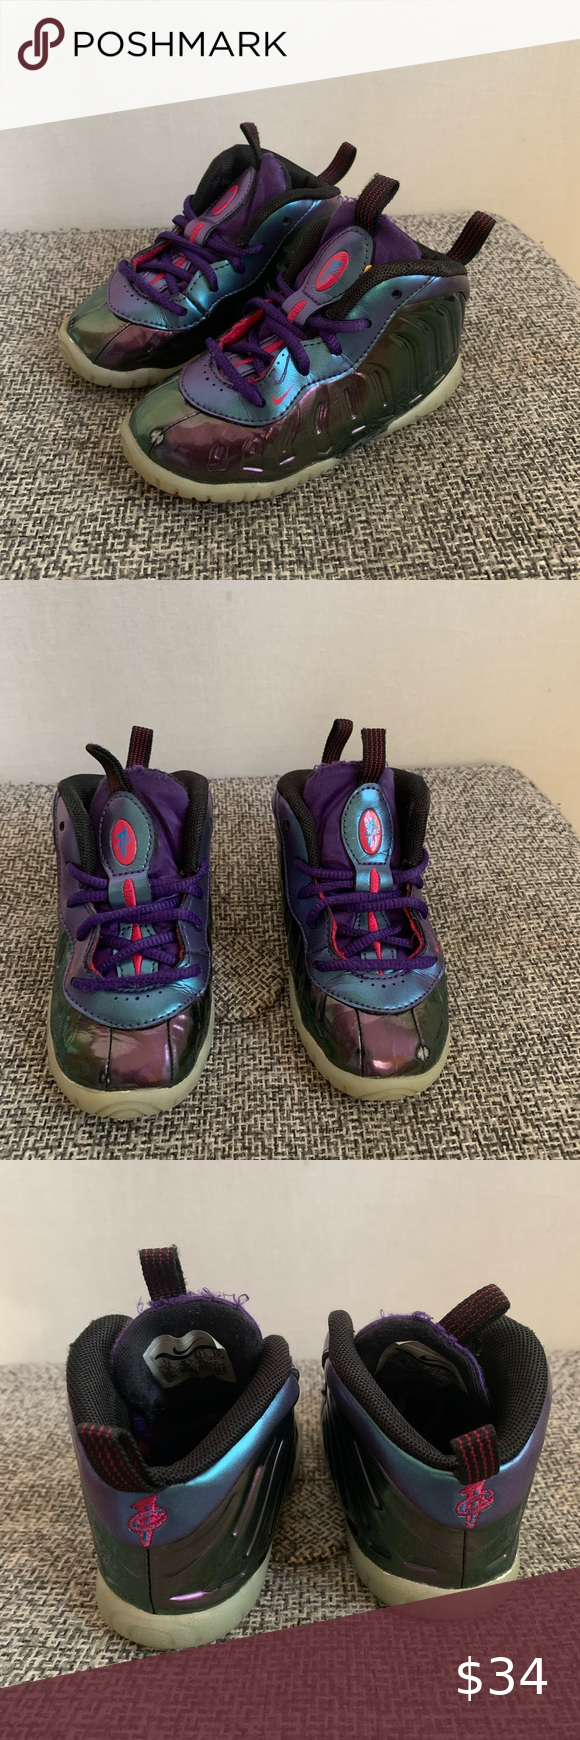 Nike Air Foamposite One Doernbecher DB 641745600 2019 ...